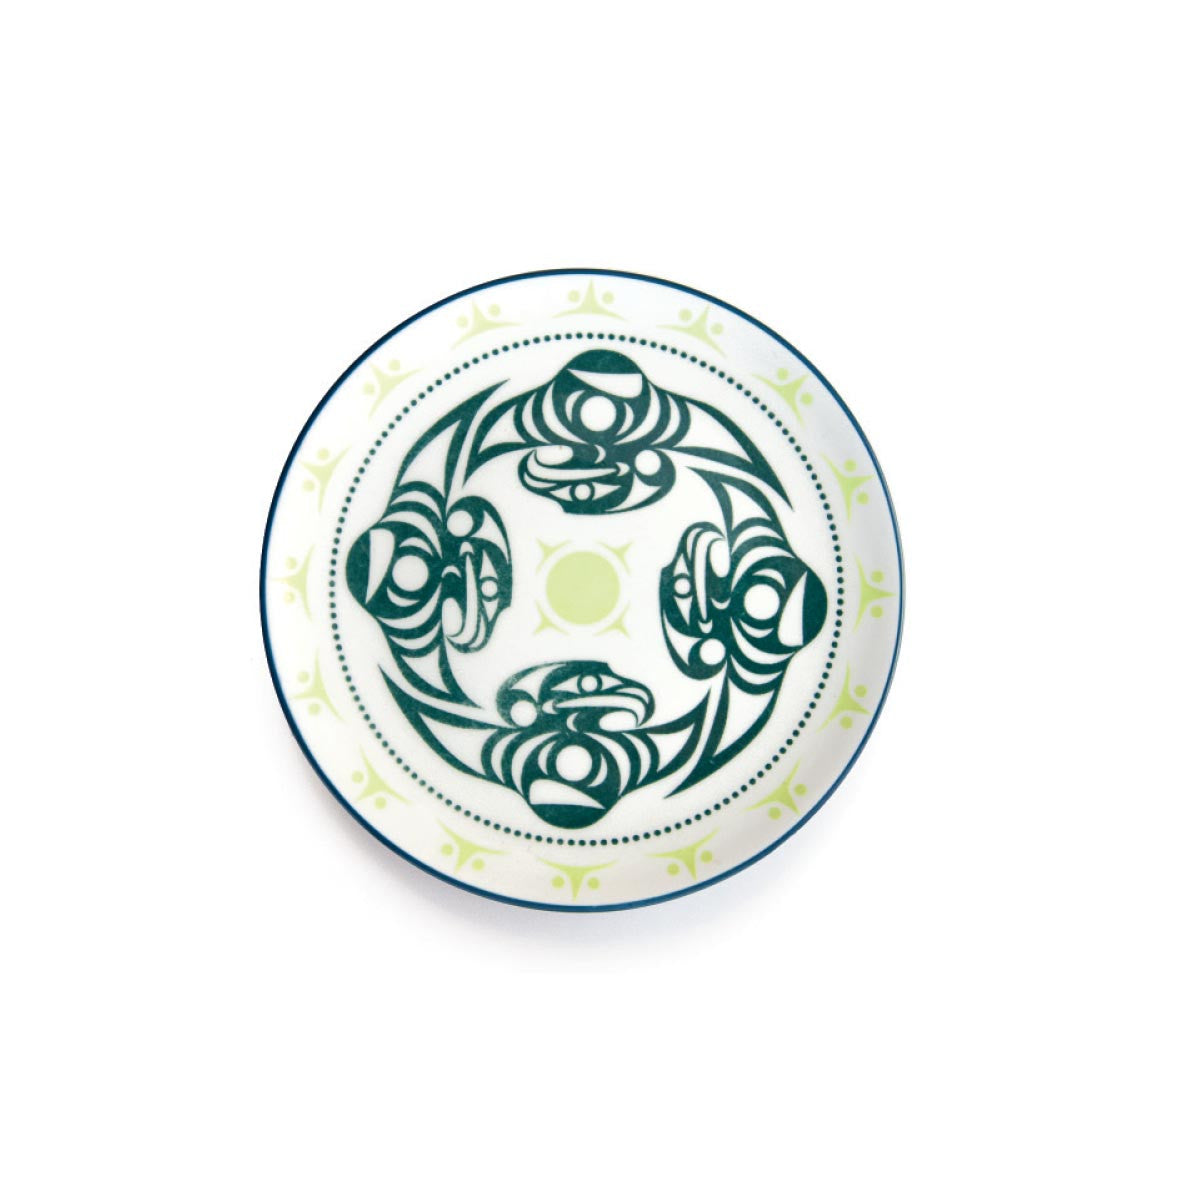 Porcelain Art Plate - Thunderbird by Dylan Thomas